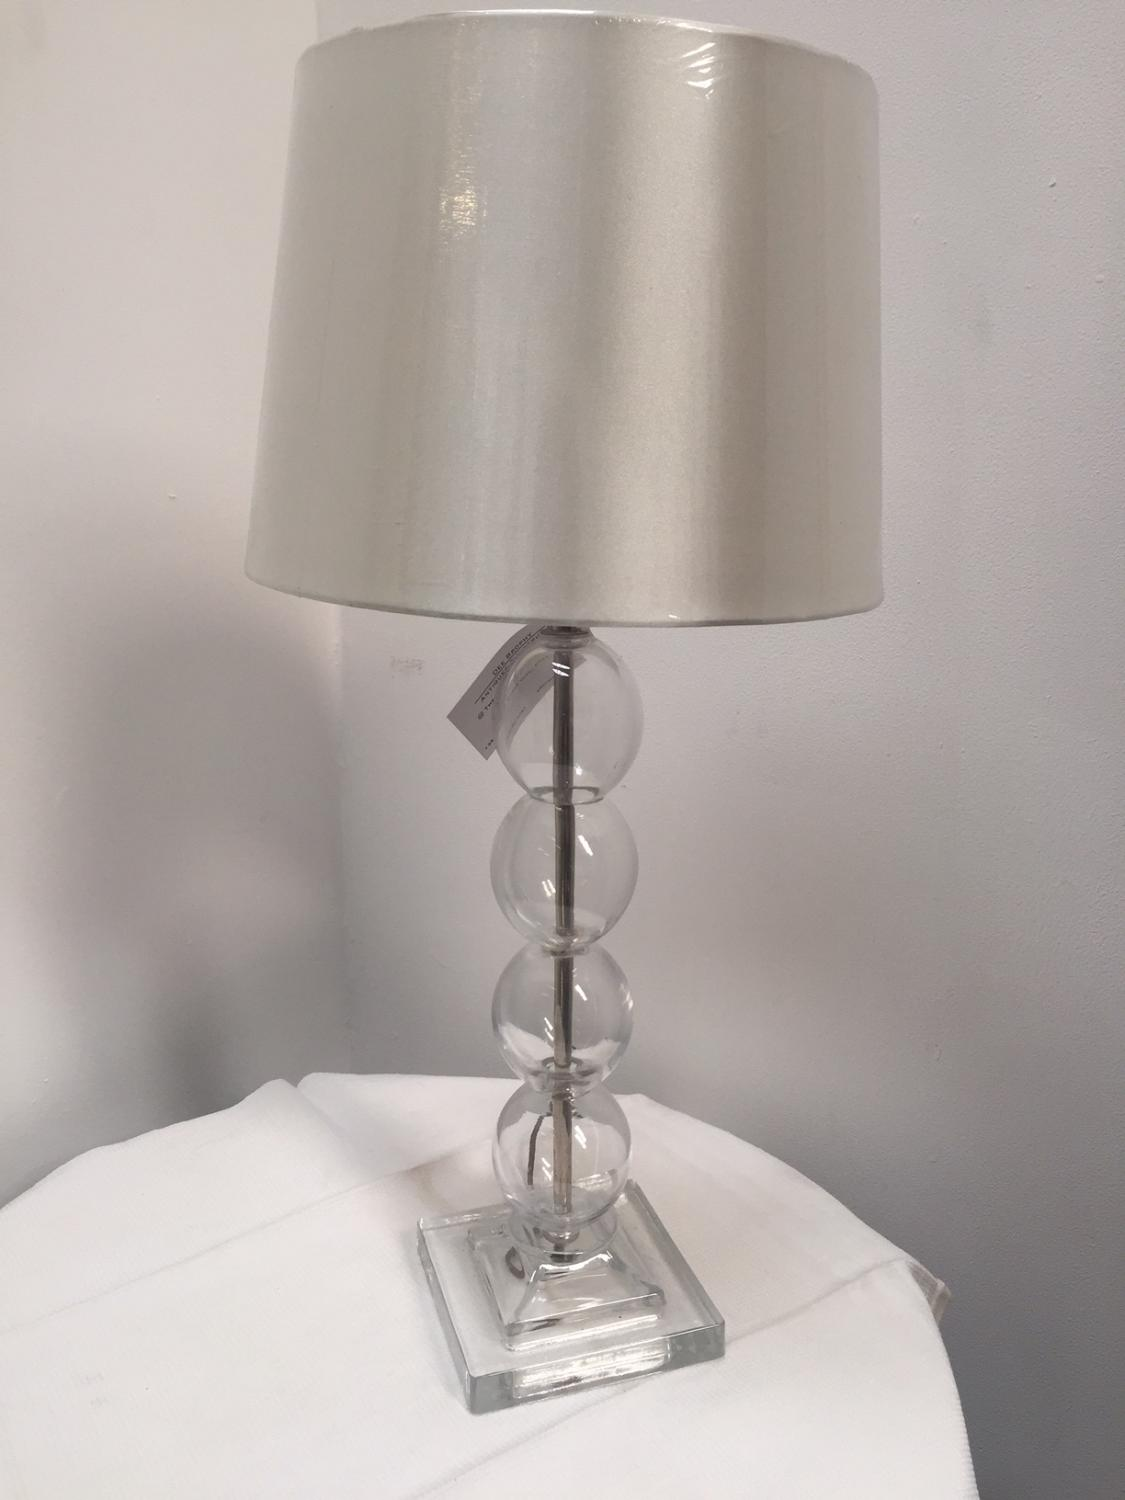 Glass Bauble Lamp with Silver Shade